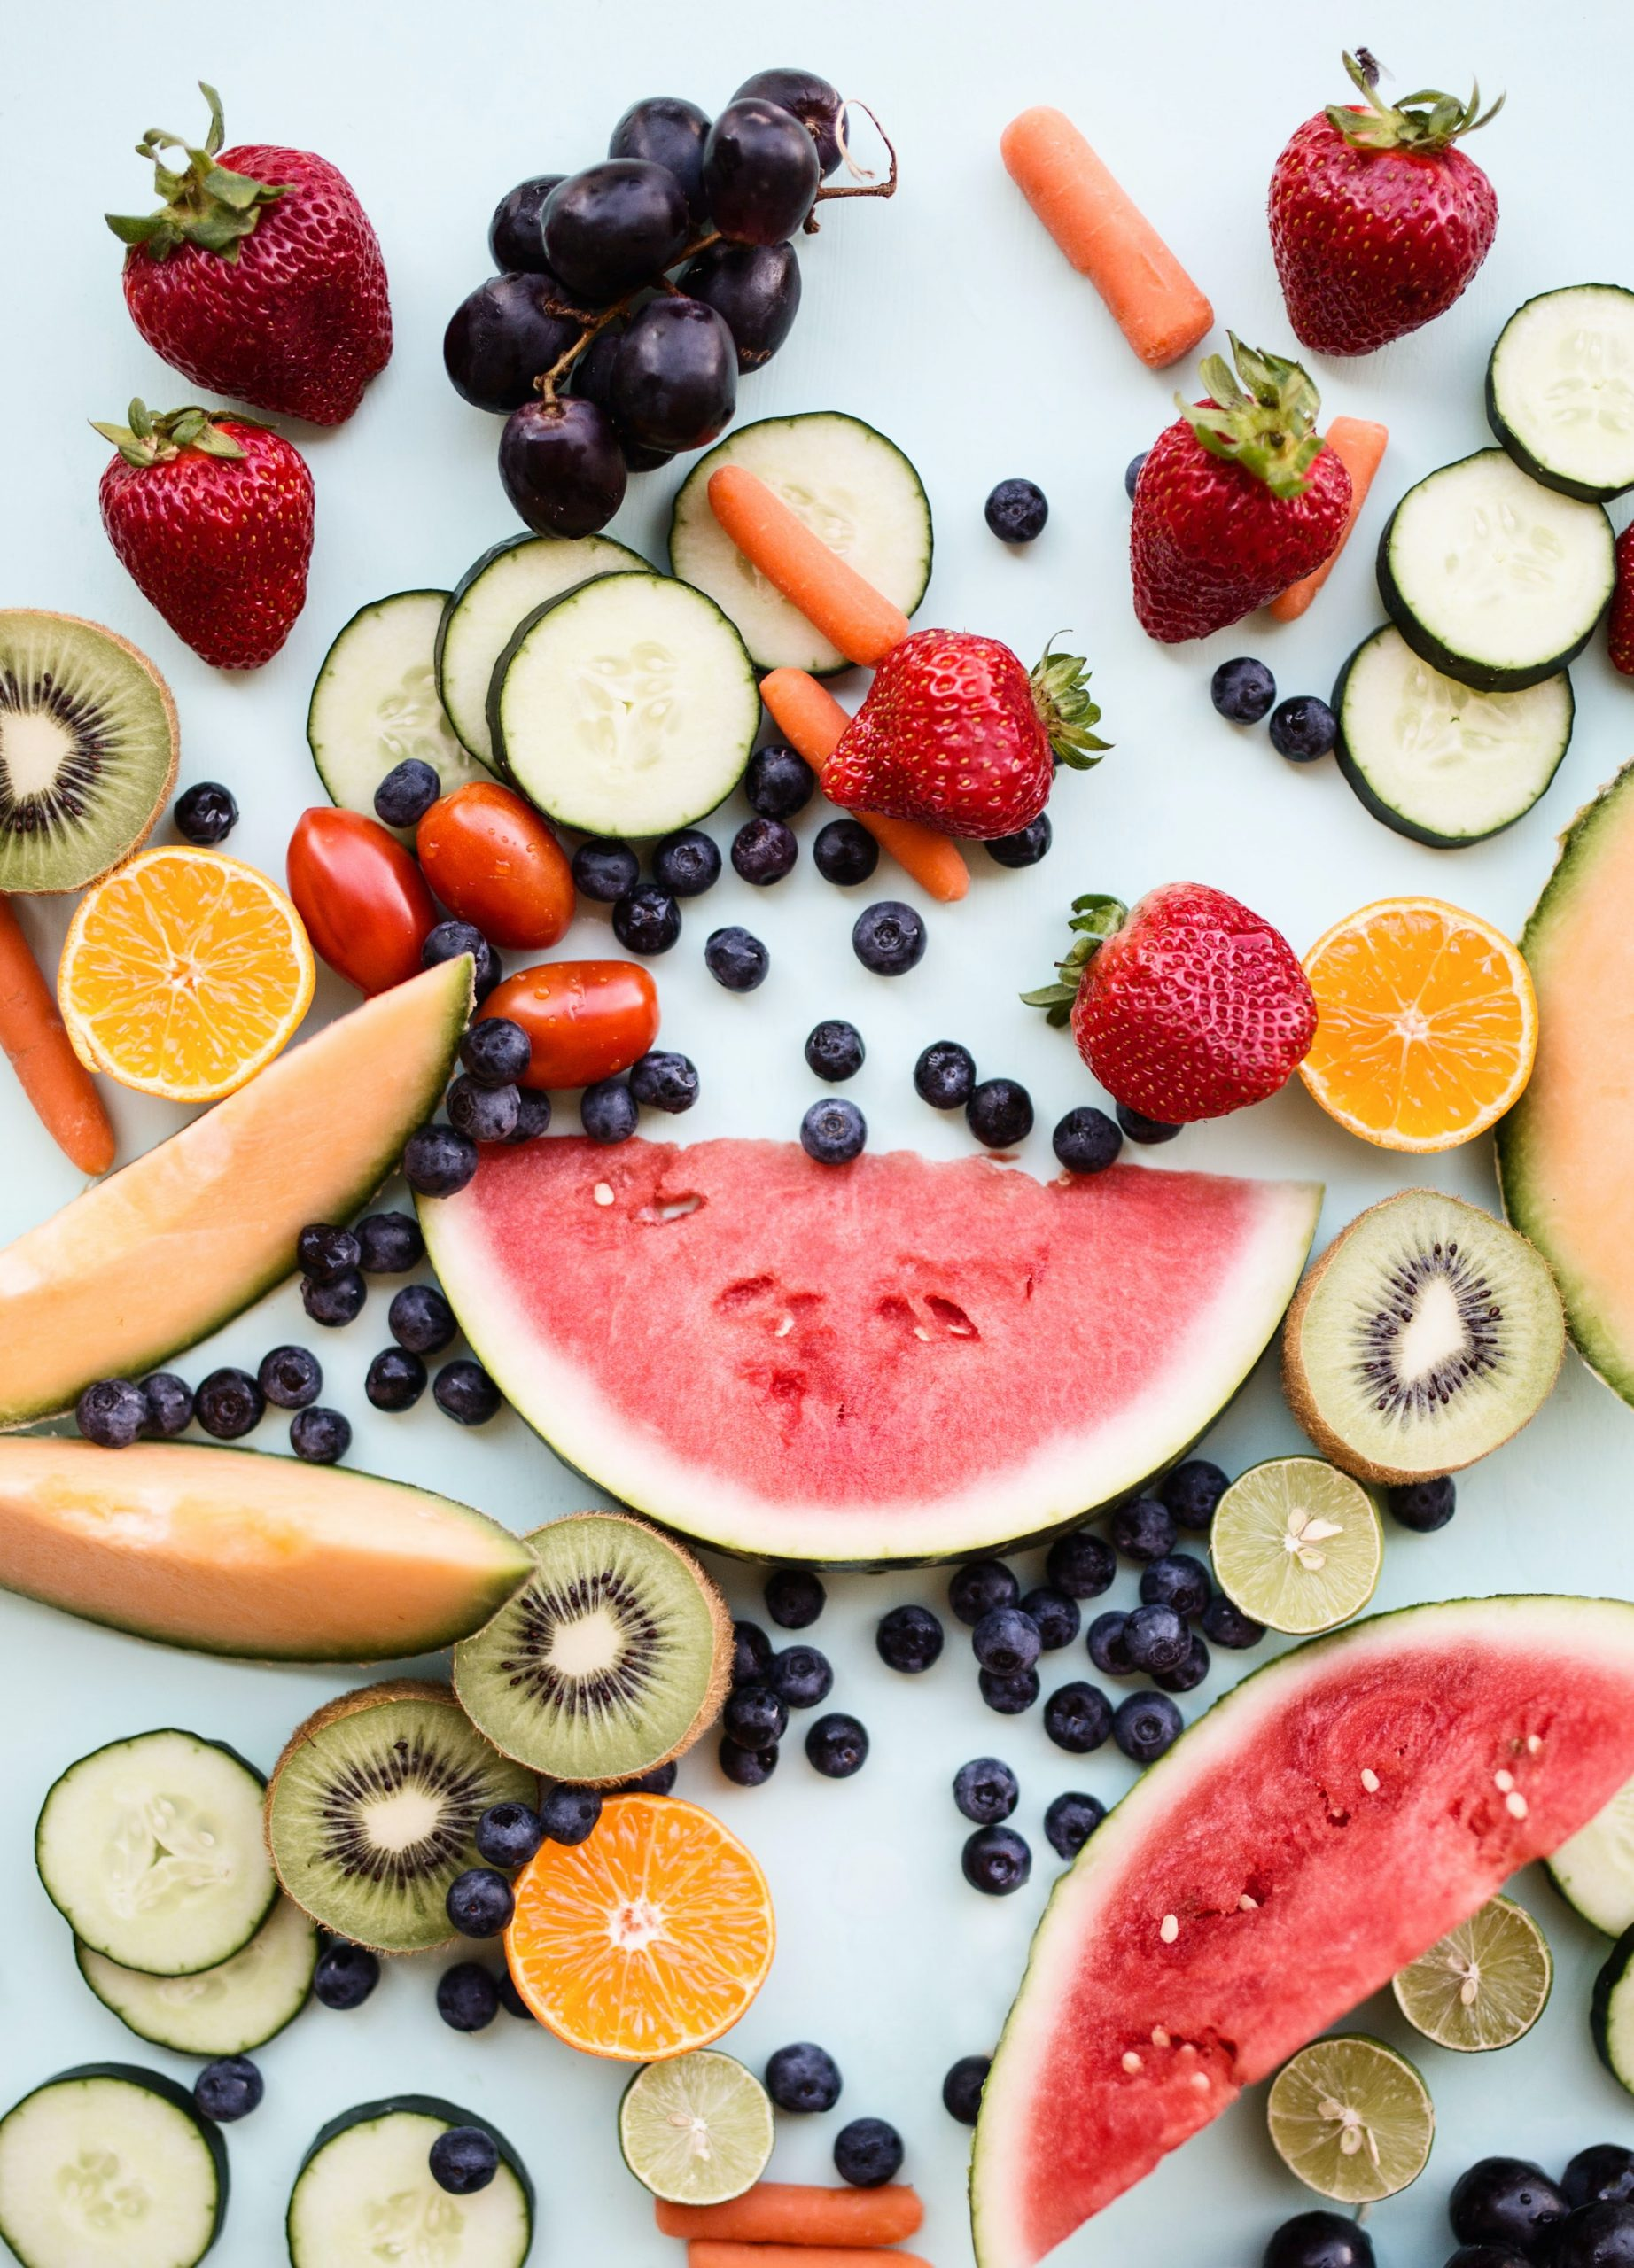 Slices of watermelon, strawberries, cucumbers, and blueberries